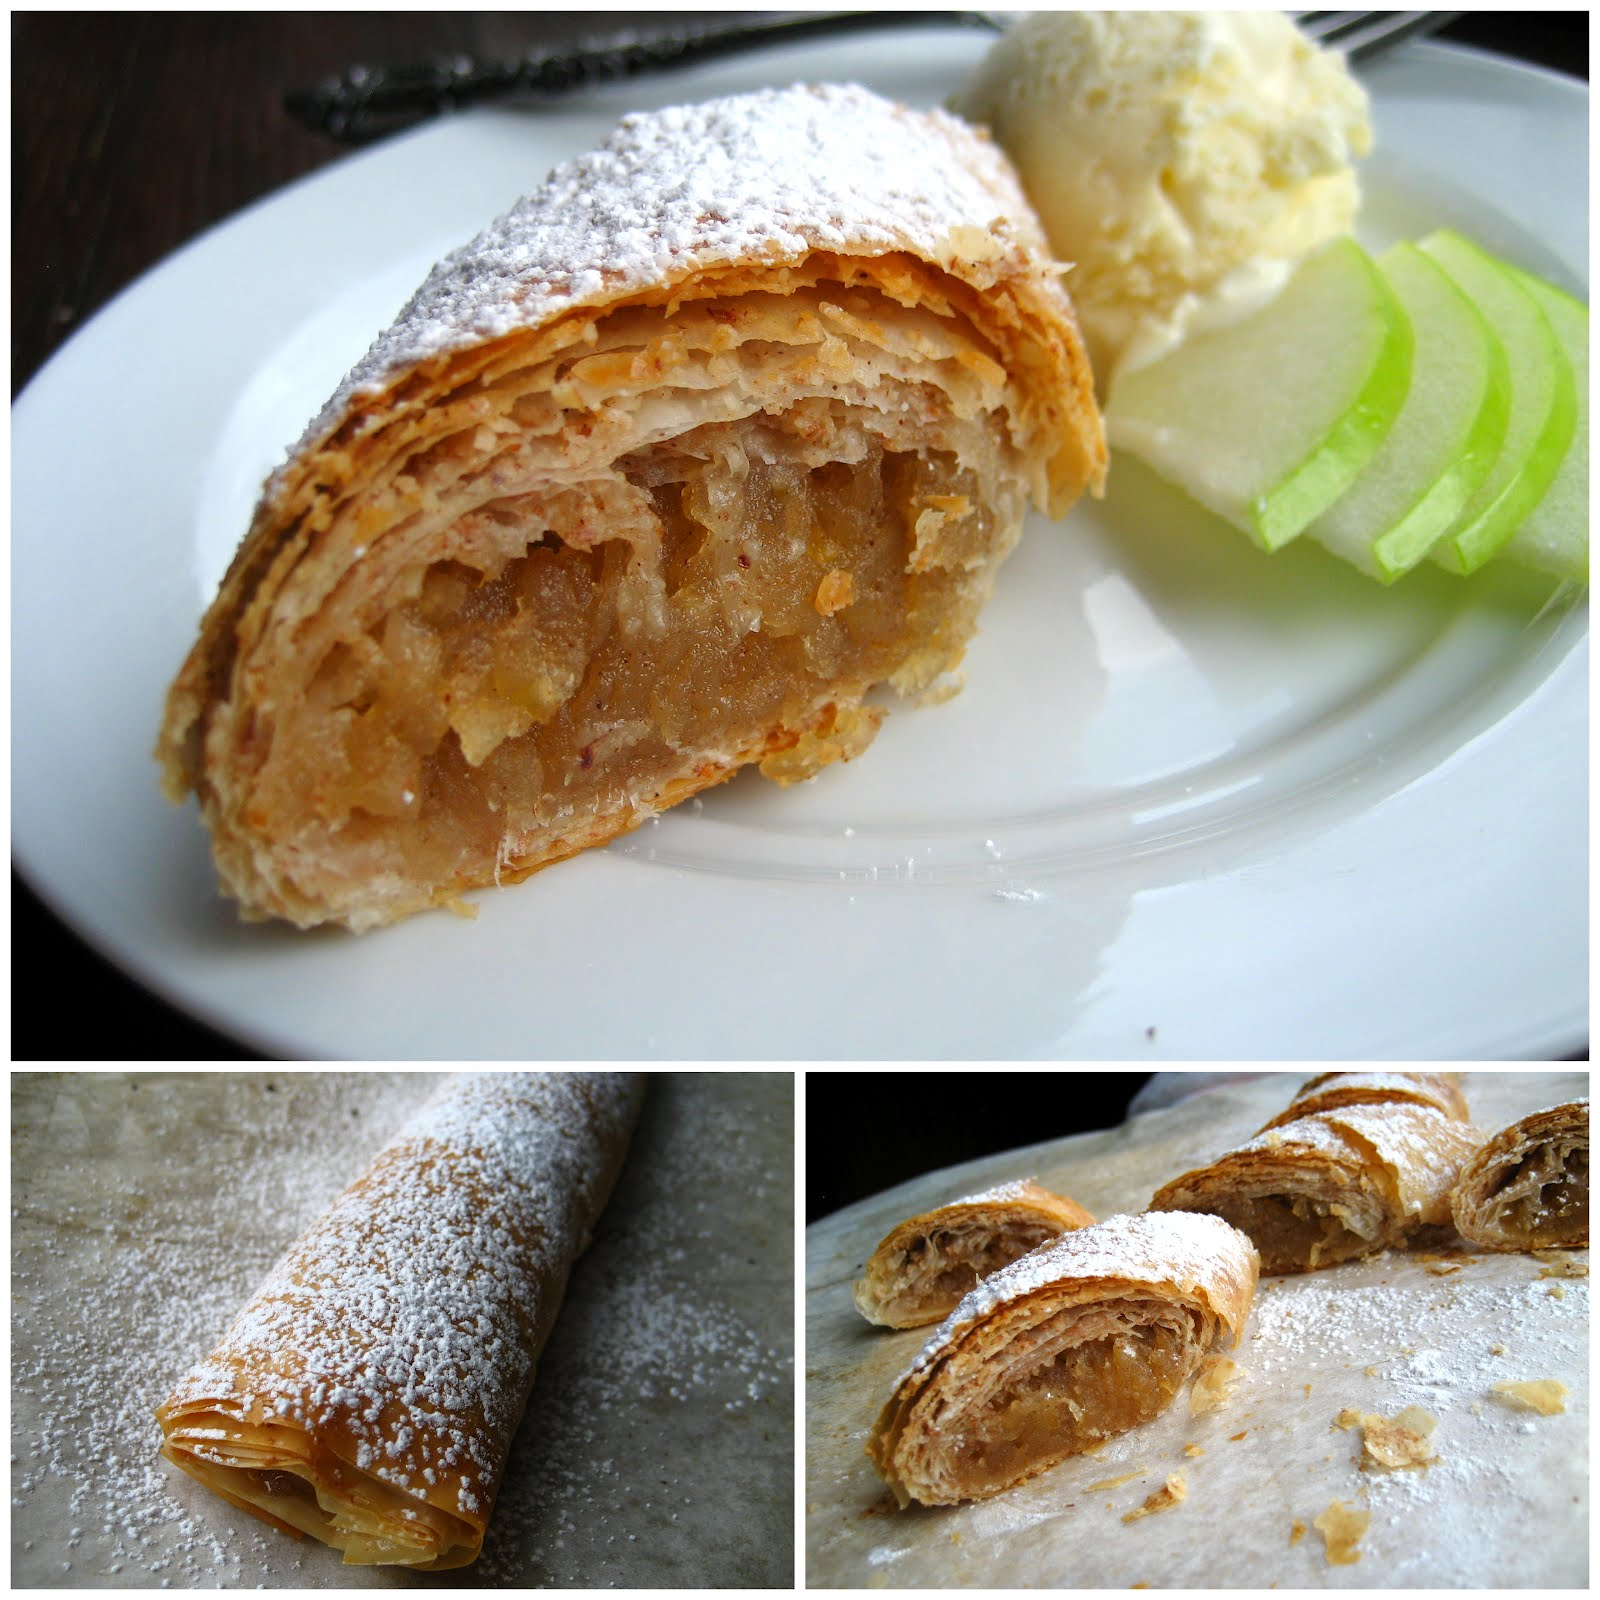 Home Cooking In Montana: Apple Strudel... my new favorite apple ...